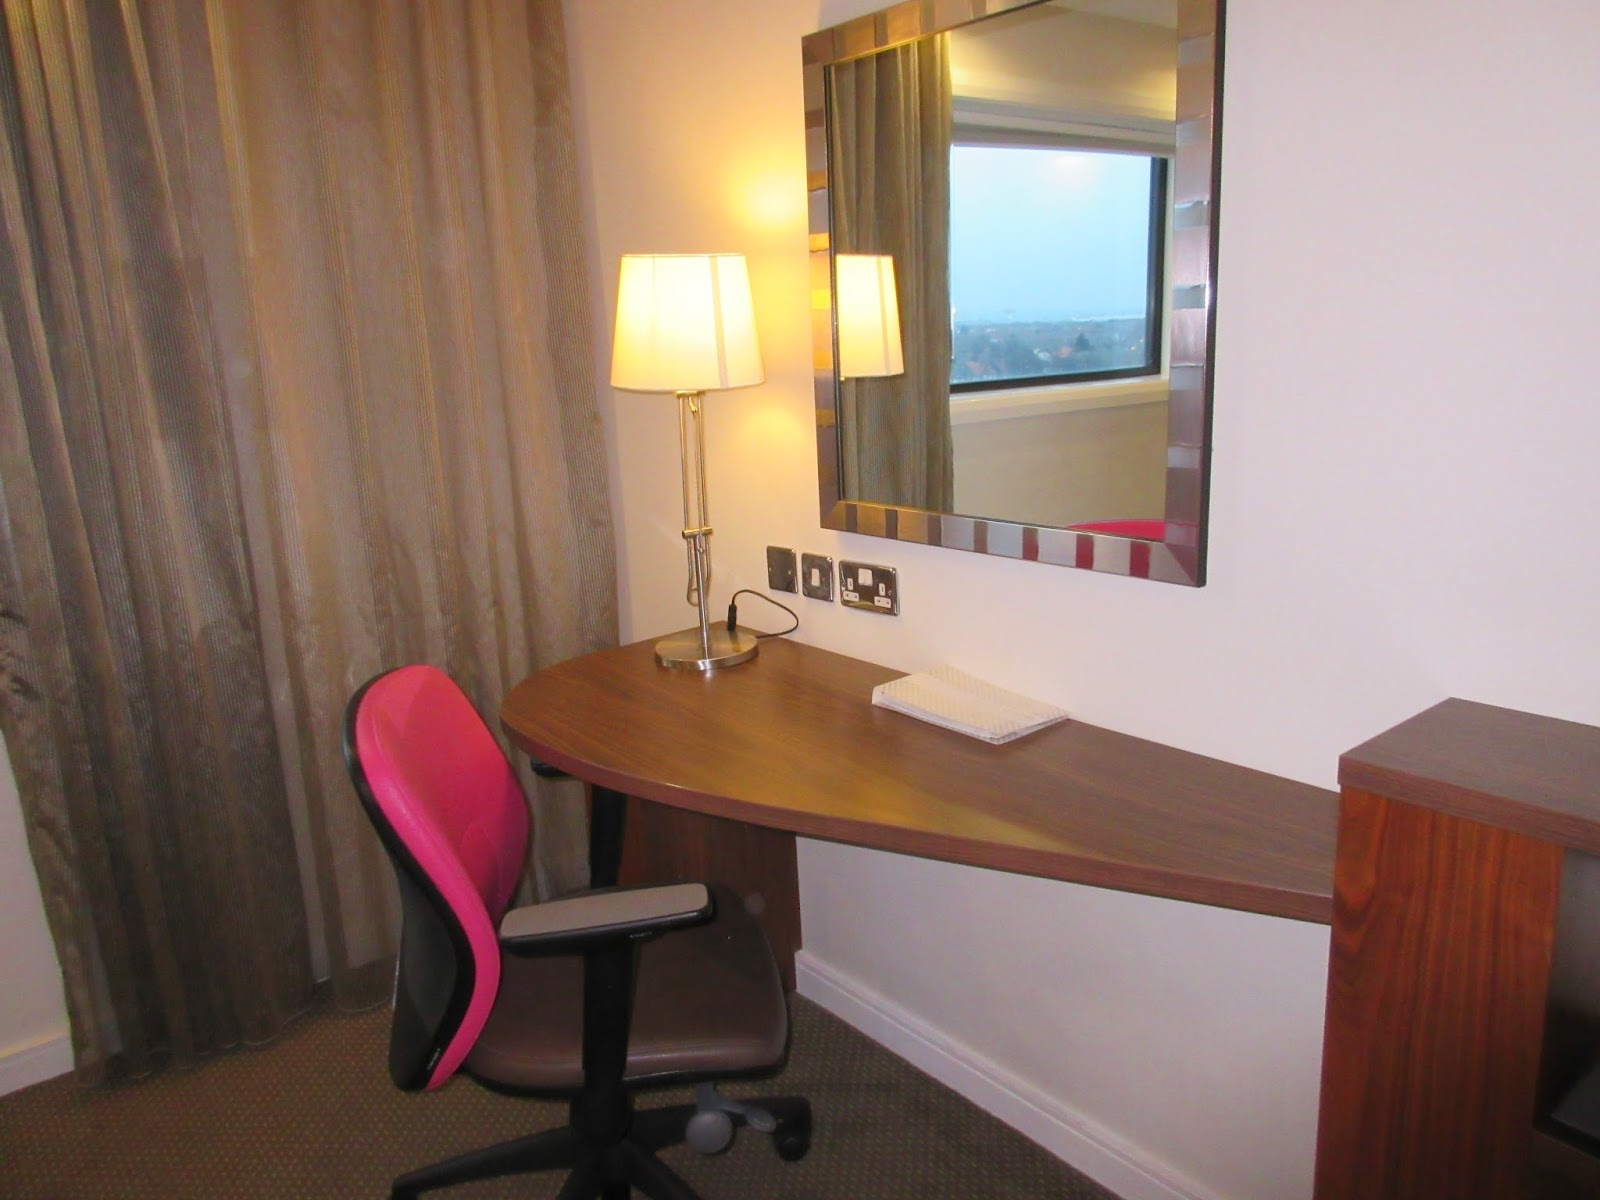 Hampton by Hilton John Lennon Airport Hotel Review